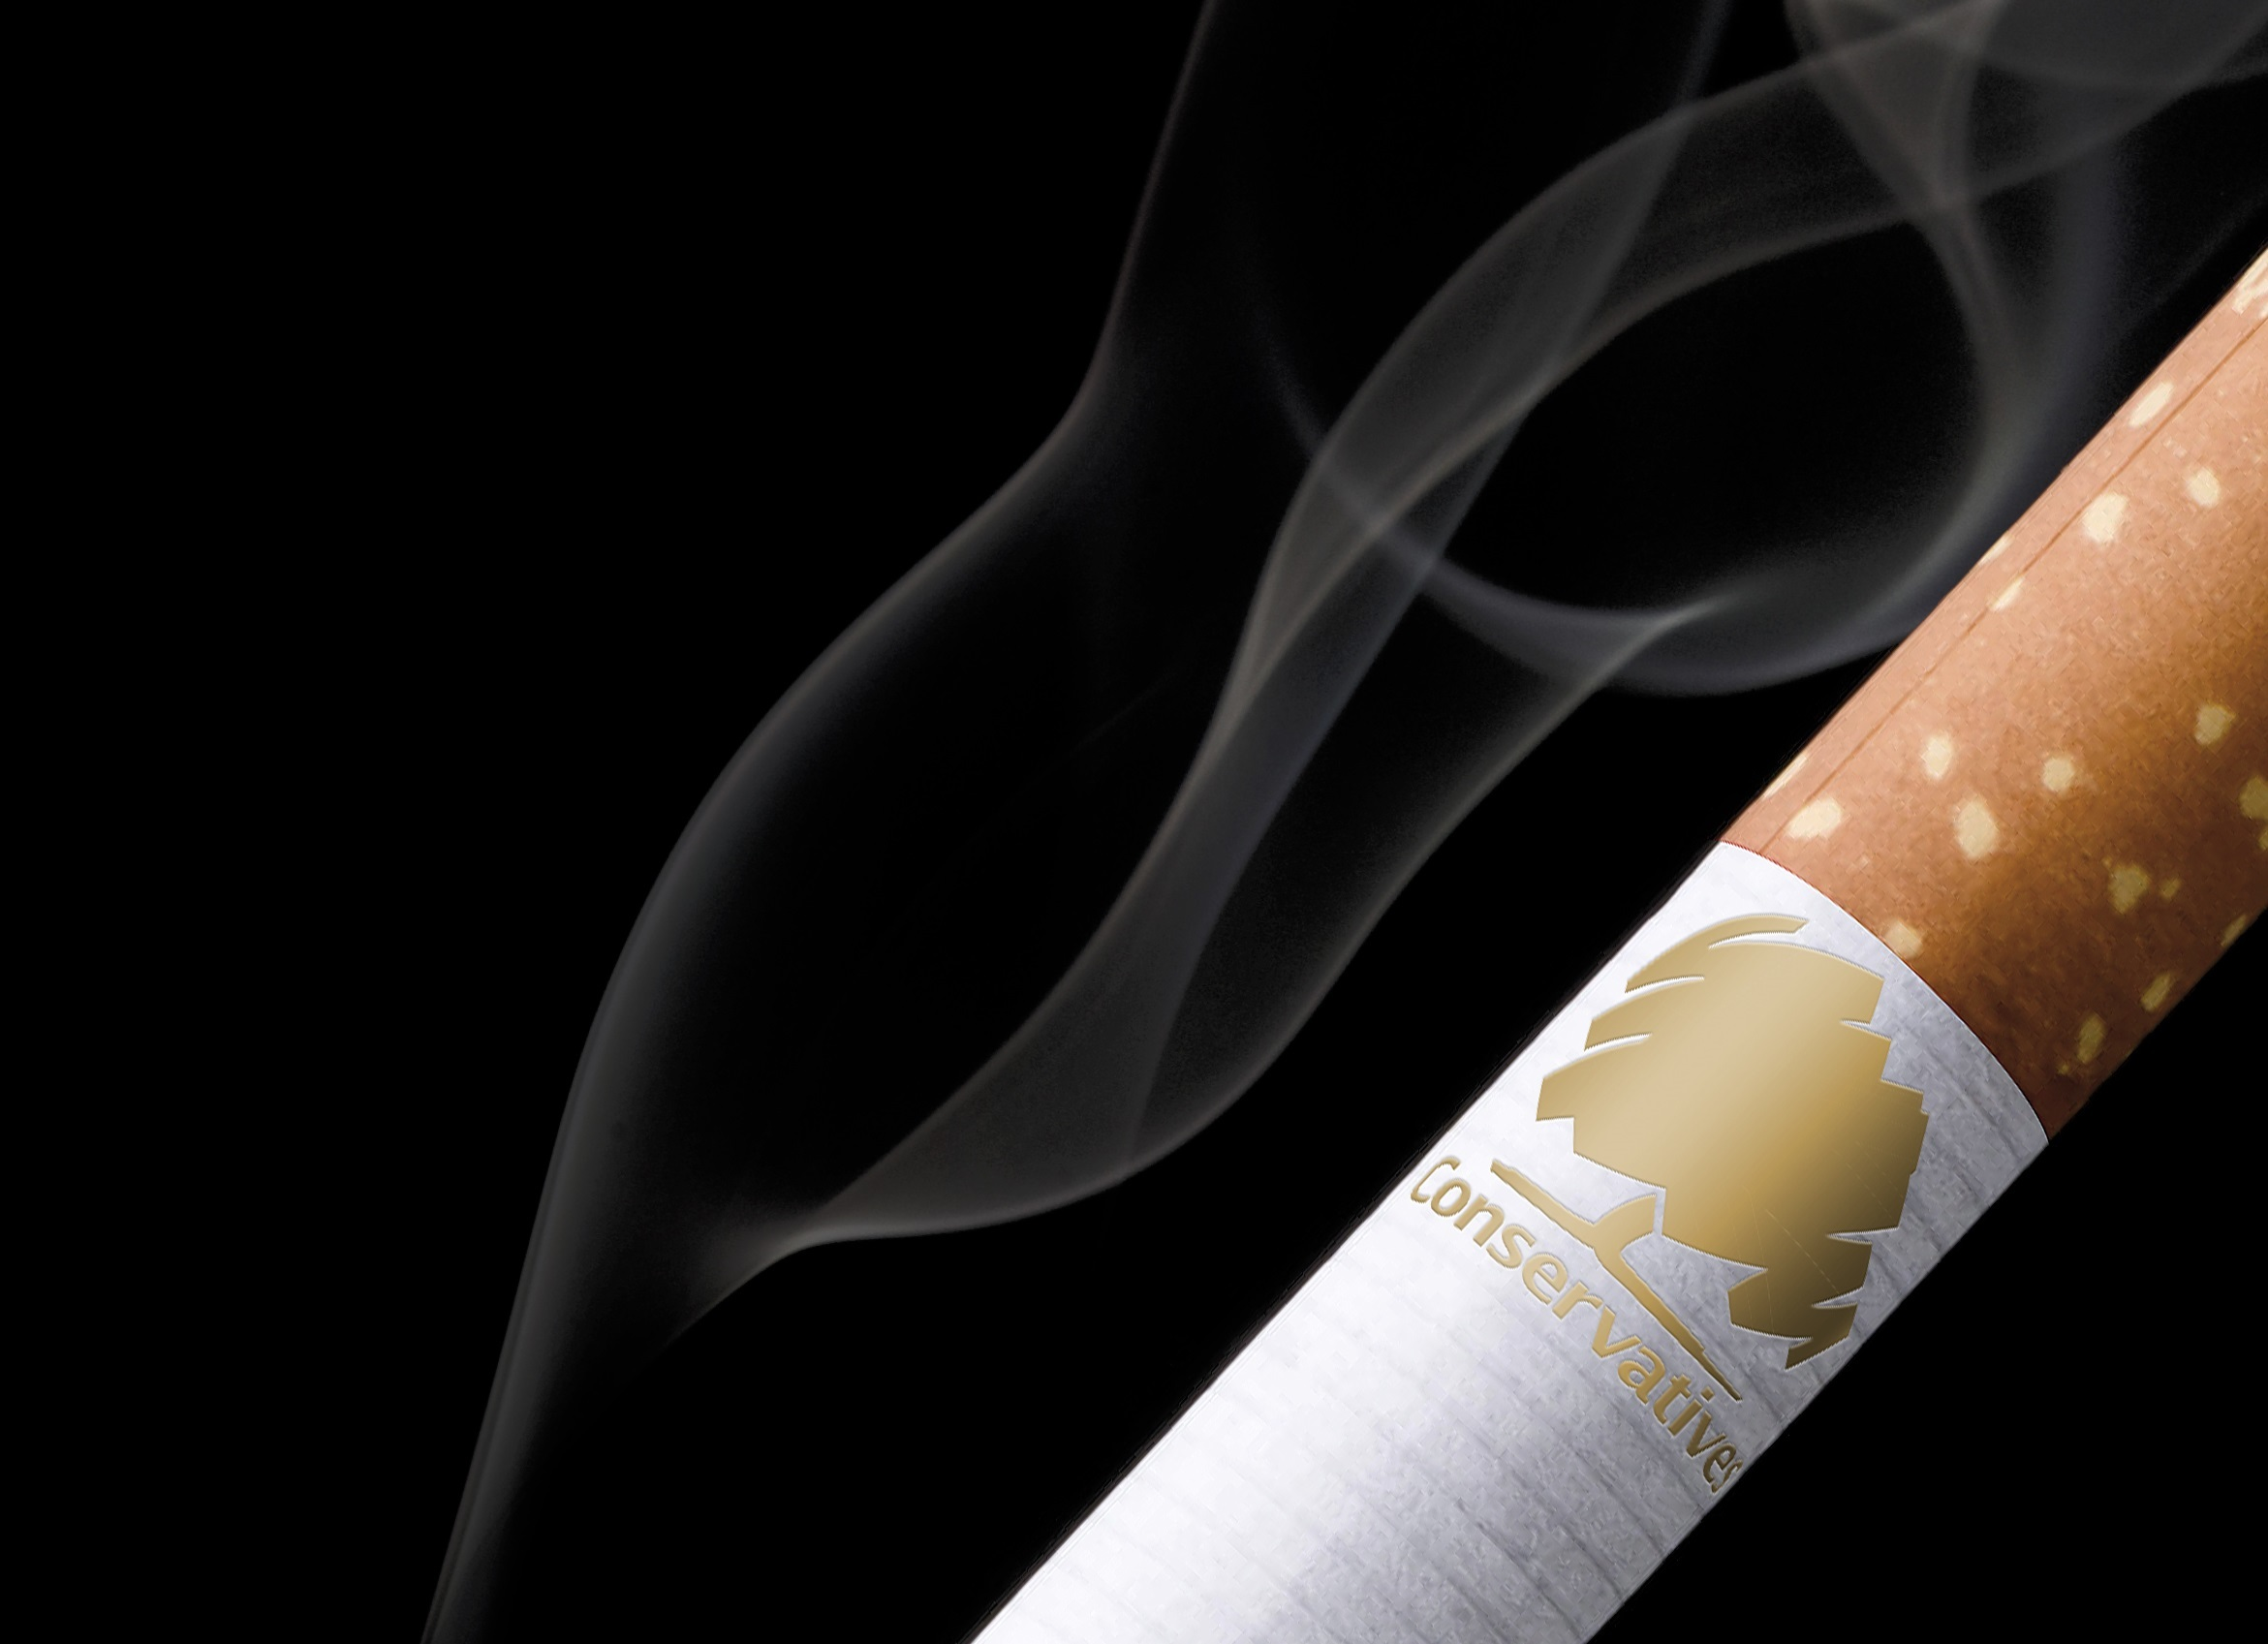 Think tank with links to big tobacco 'holds key to No 10'